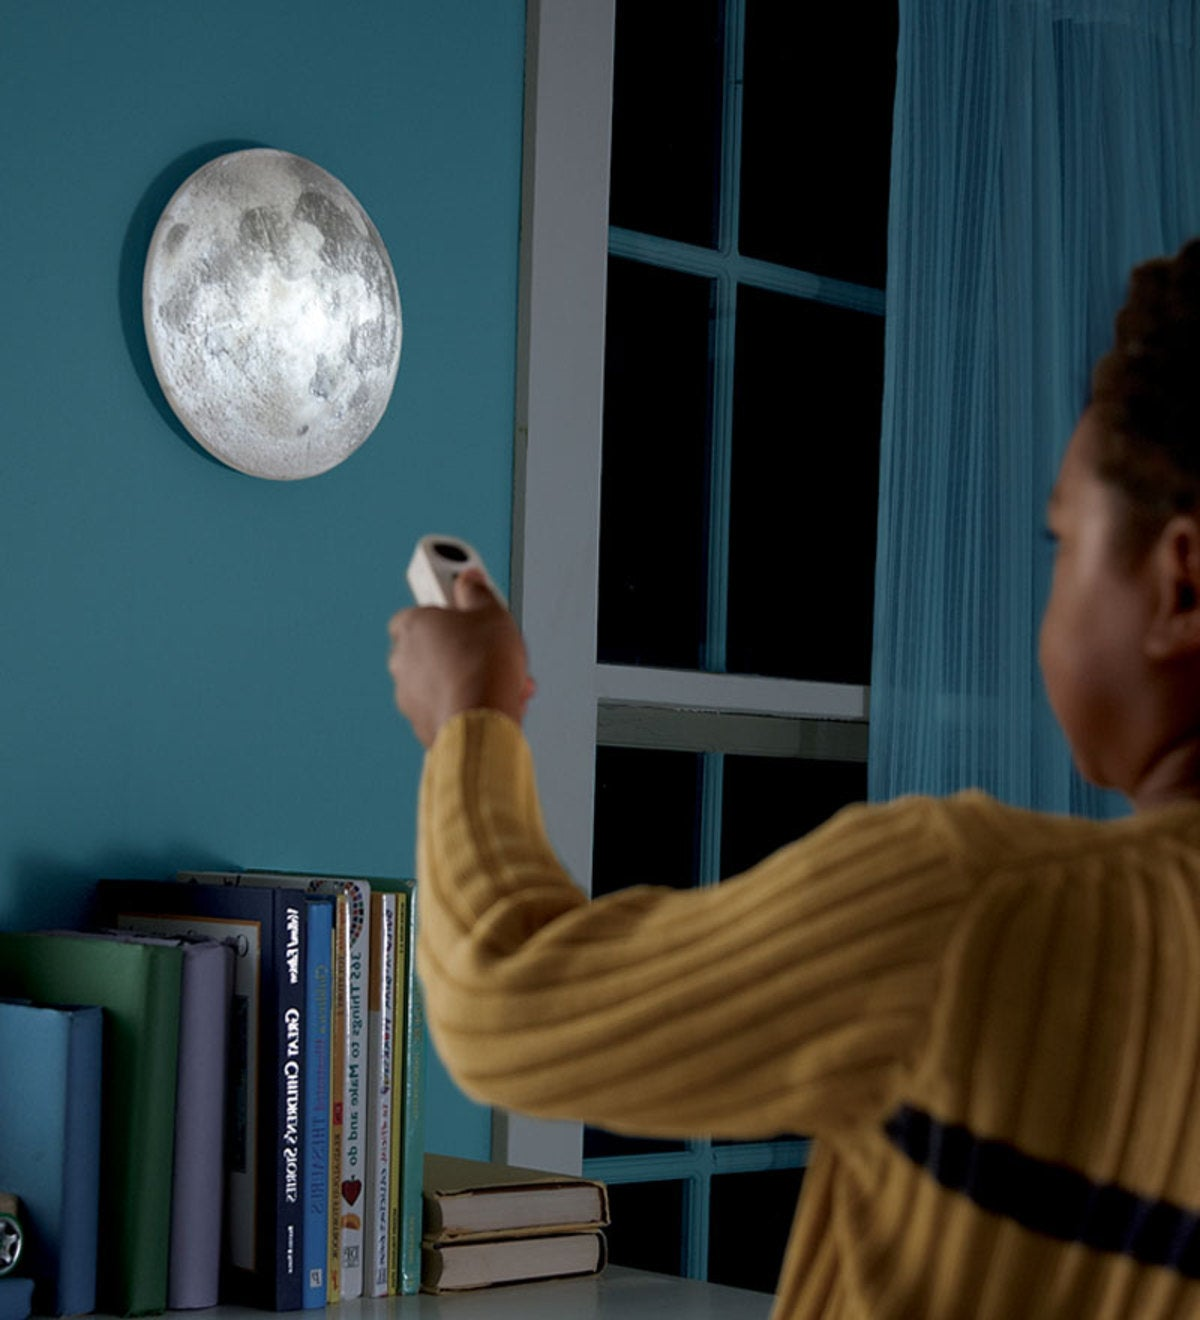 Battery Powered Moon In My RoomTM With Remote Control